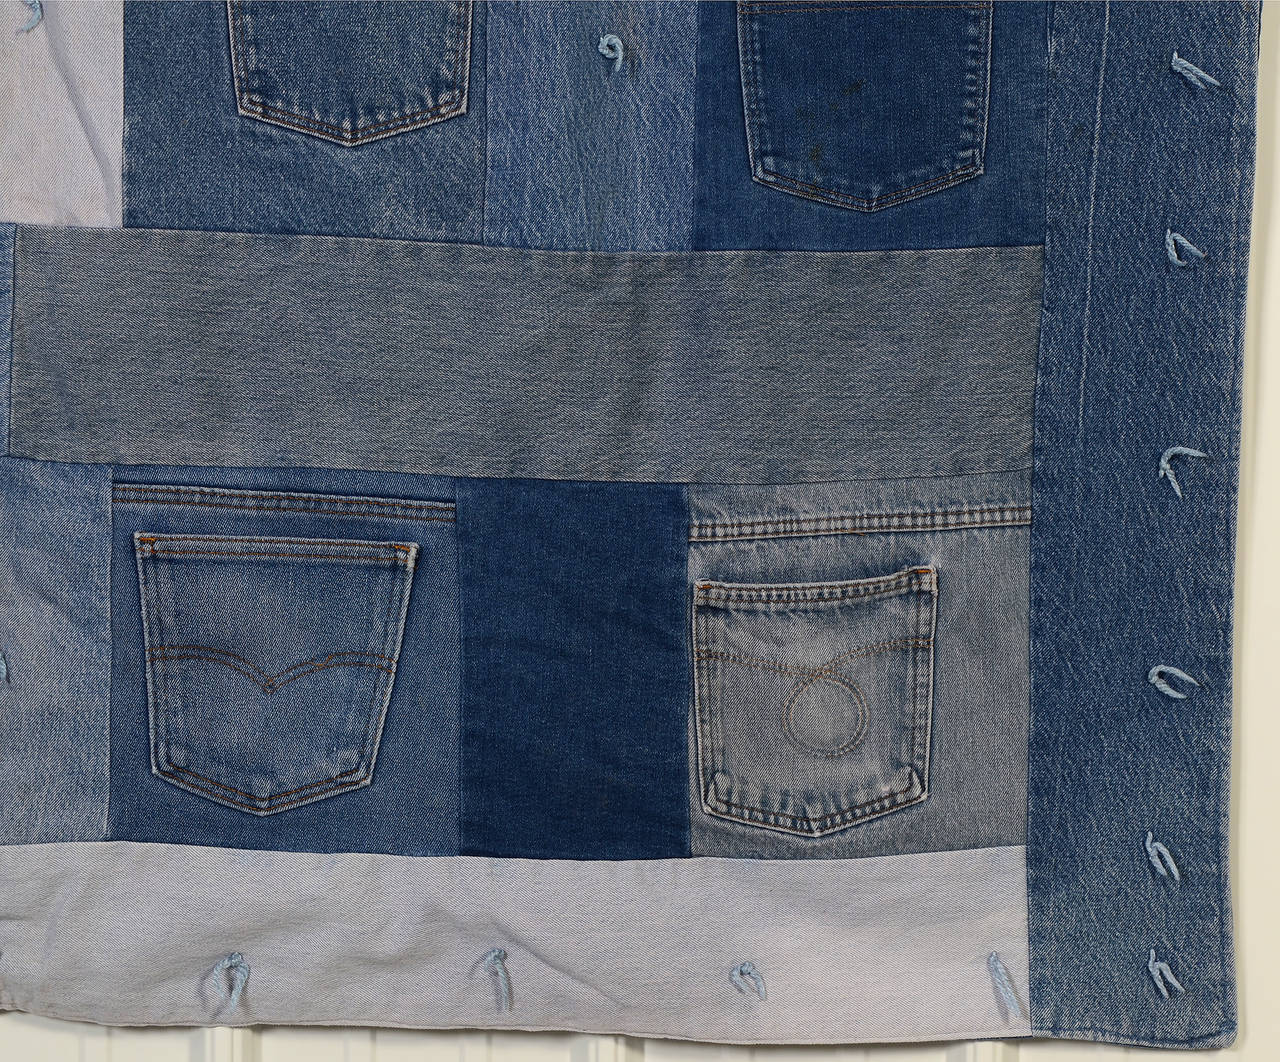 Denim Quilt with Jeans Pockets 3